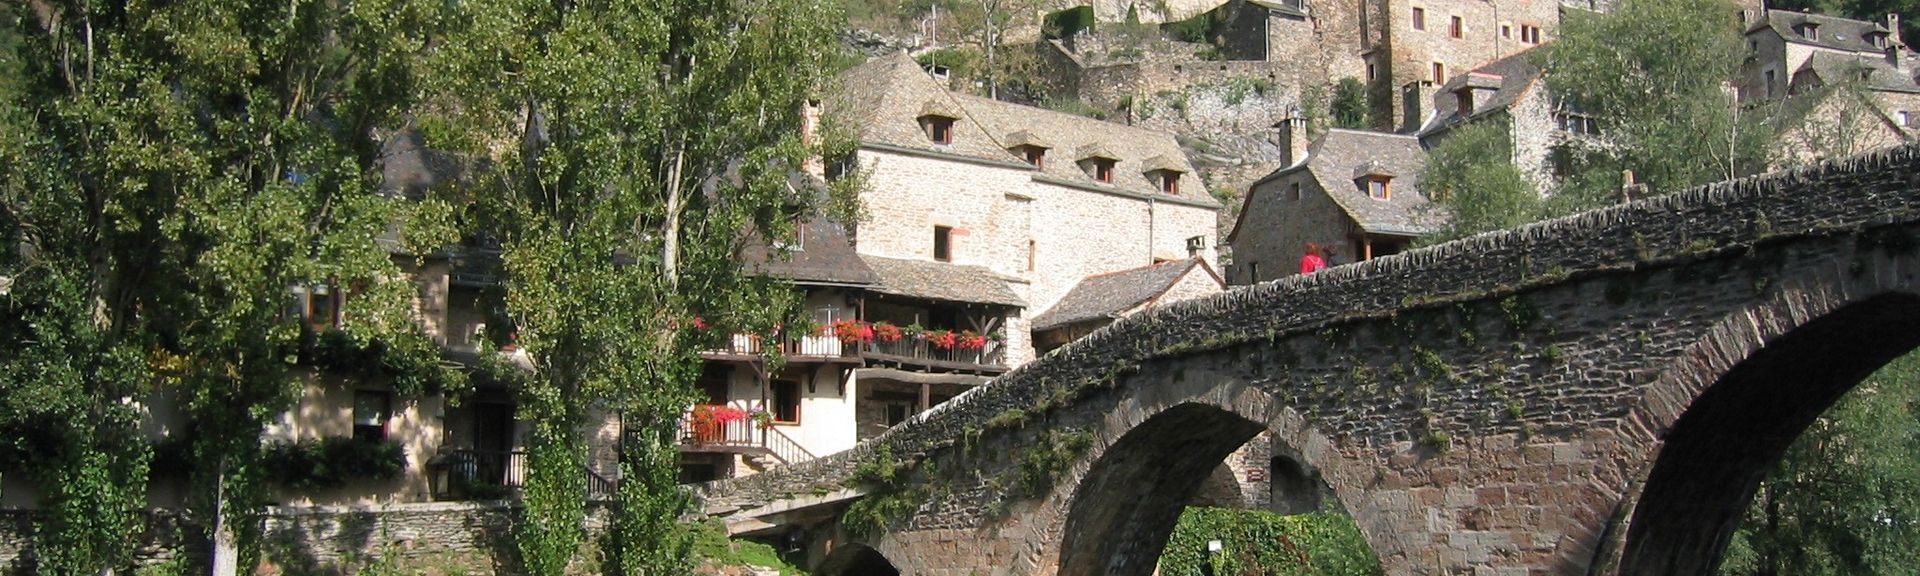 Ginals, Occitanie, France